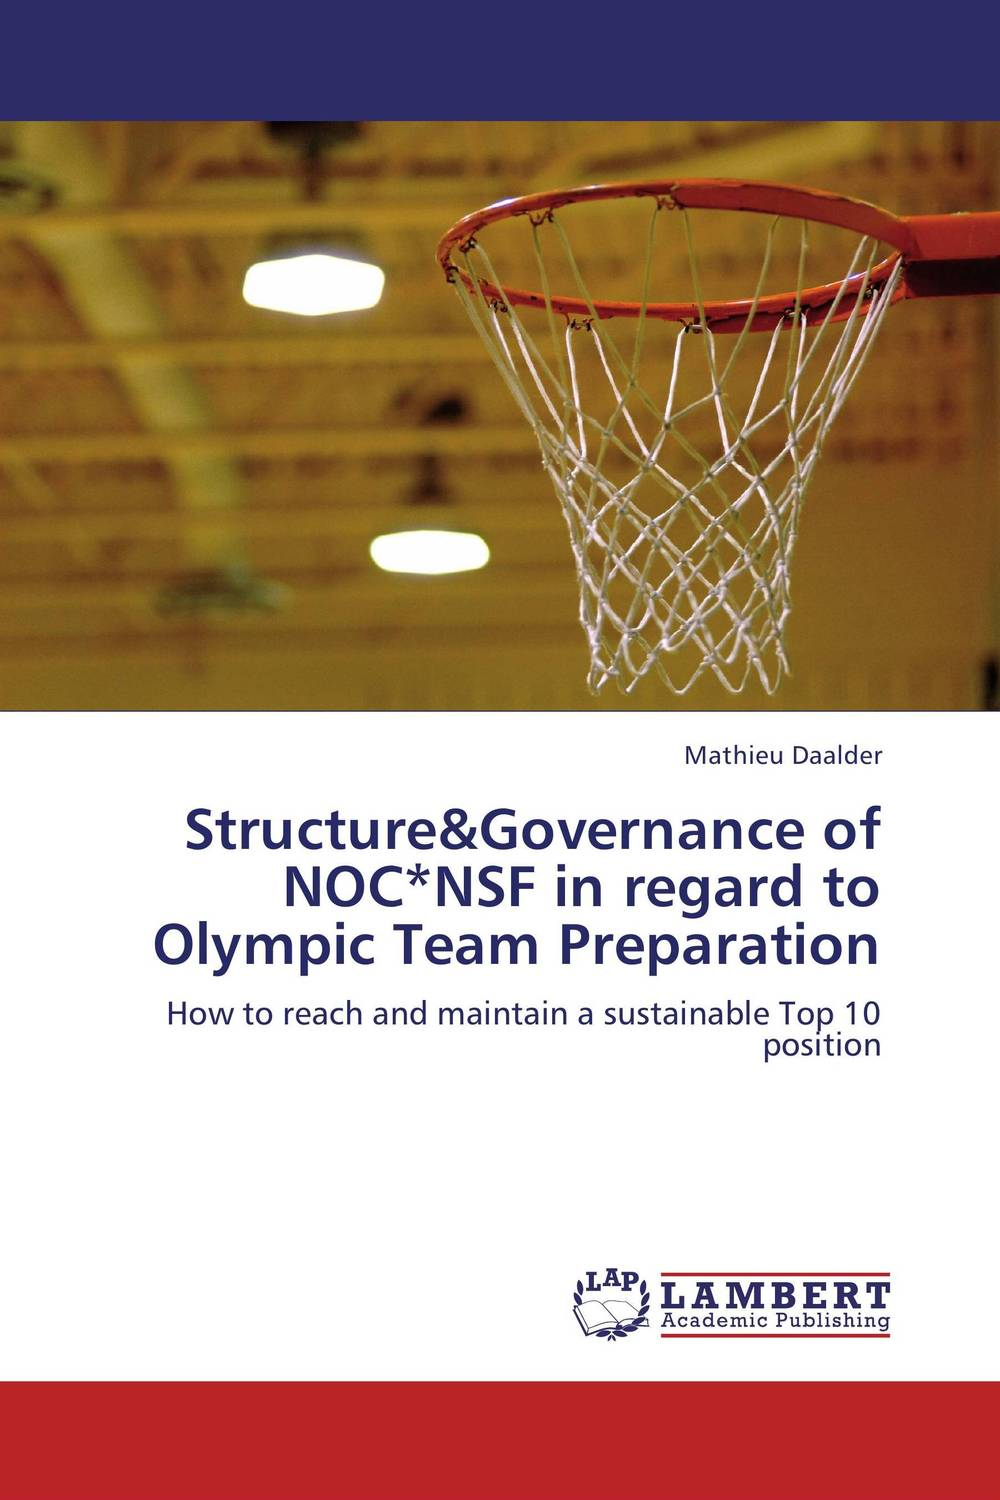 Structure&Governance of NOC*NSF in regard to Olympic Team Preparation bork water а704